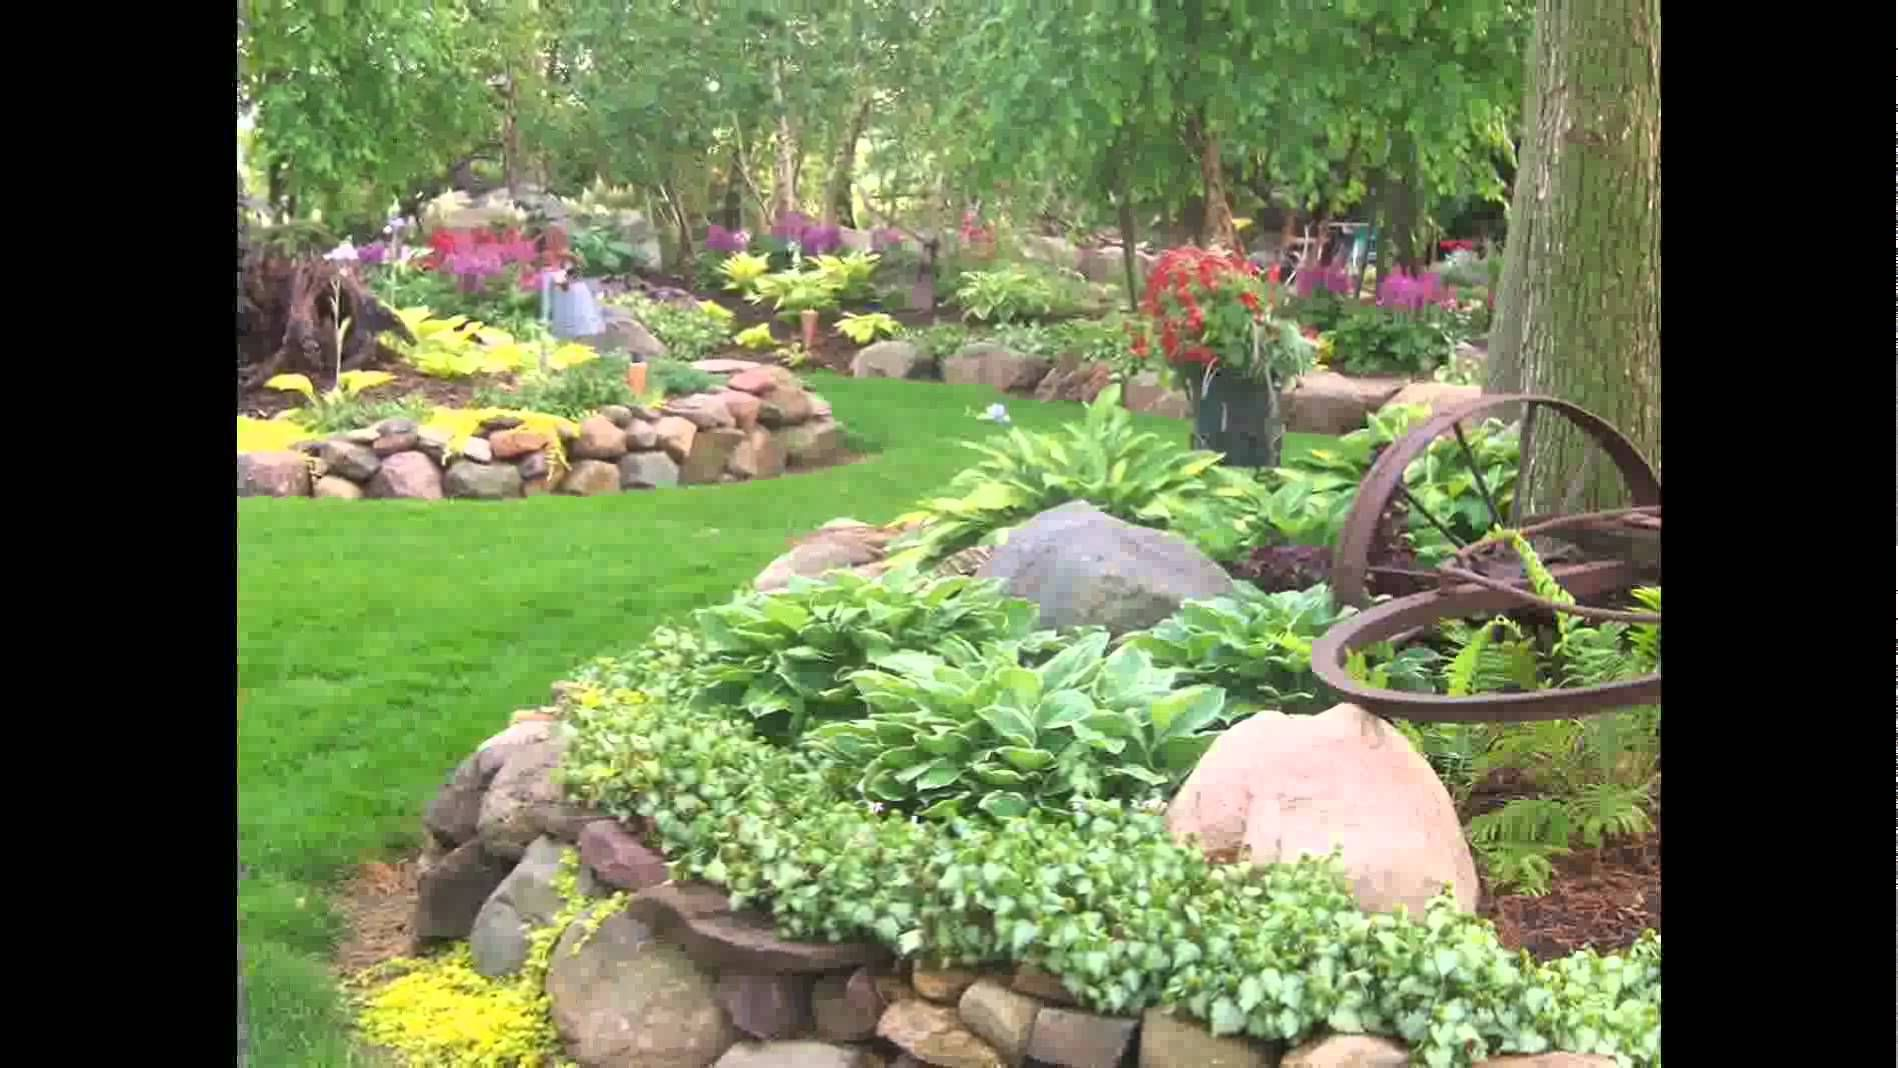 Rock Garden Designs | Rock Garden Designs For Front Yards | Small Rock G...